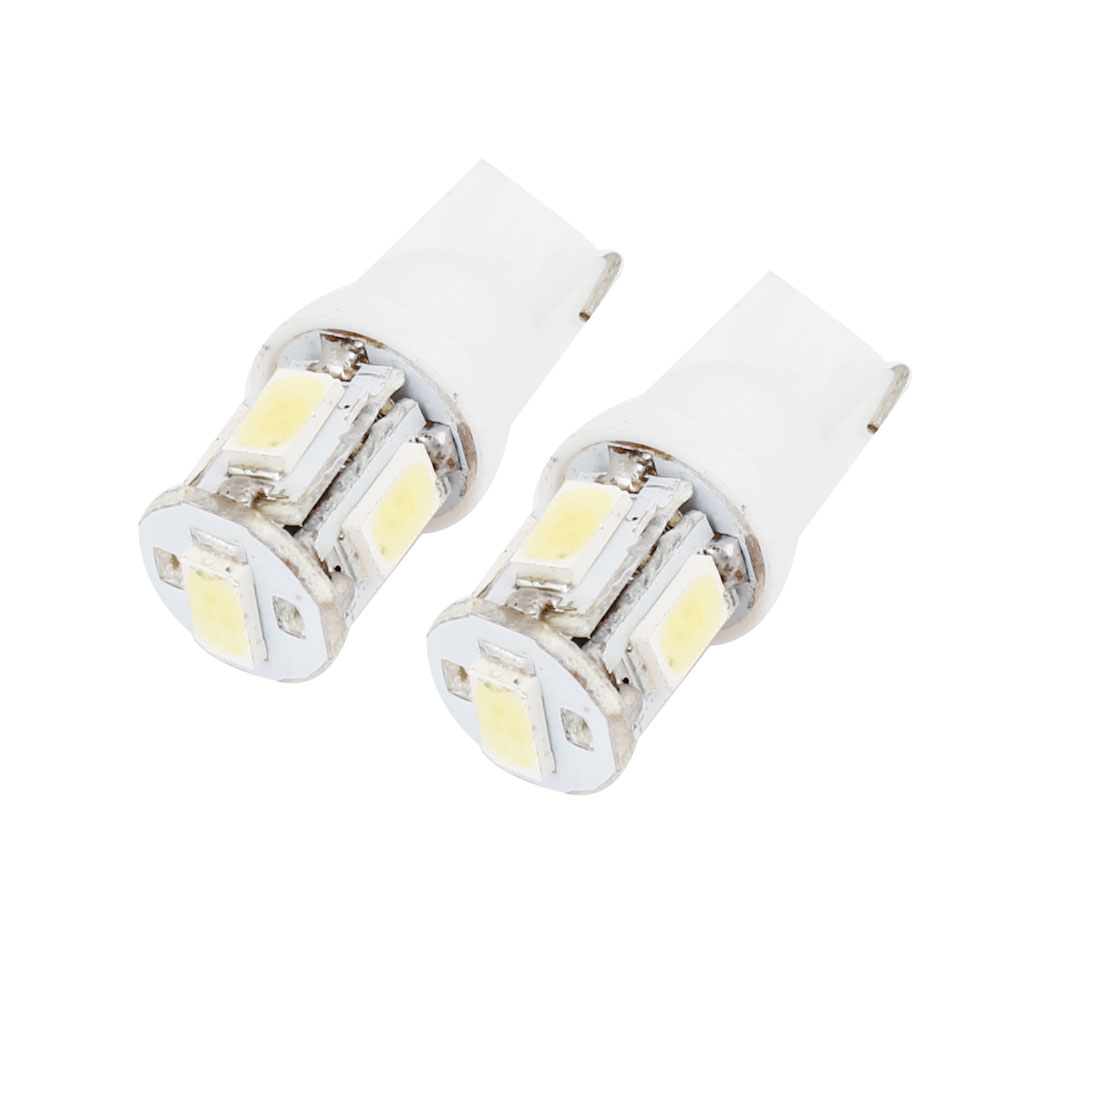 2 x T10 916 W5W White 5 5630 SMD LED Auto Gauge Light Bulbs Lamps